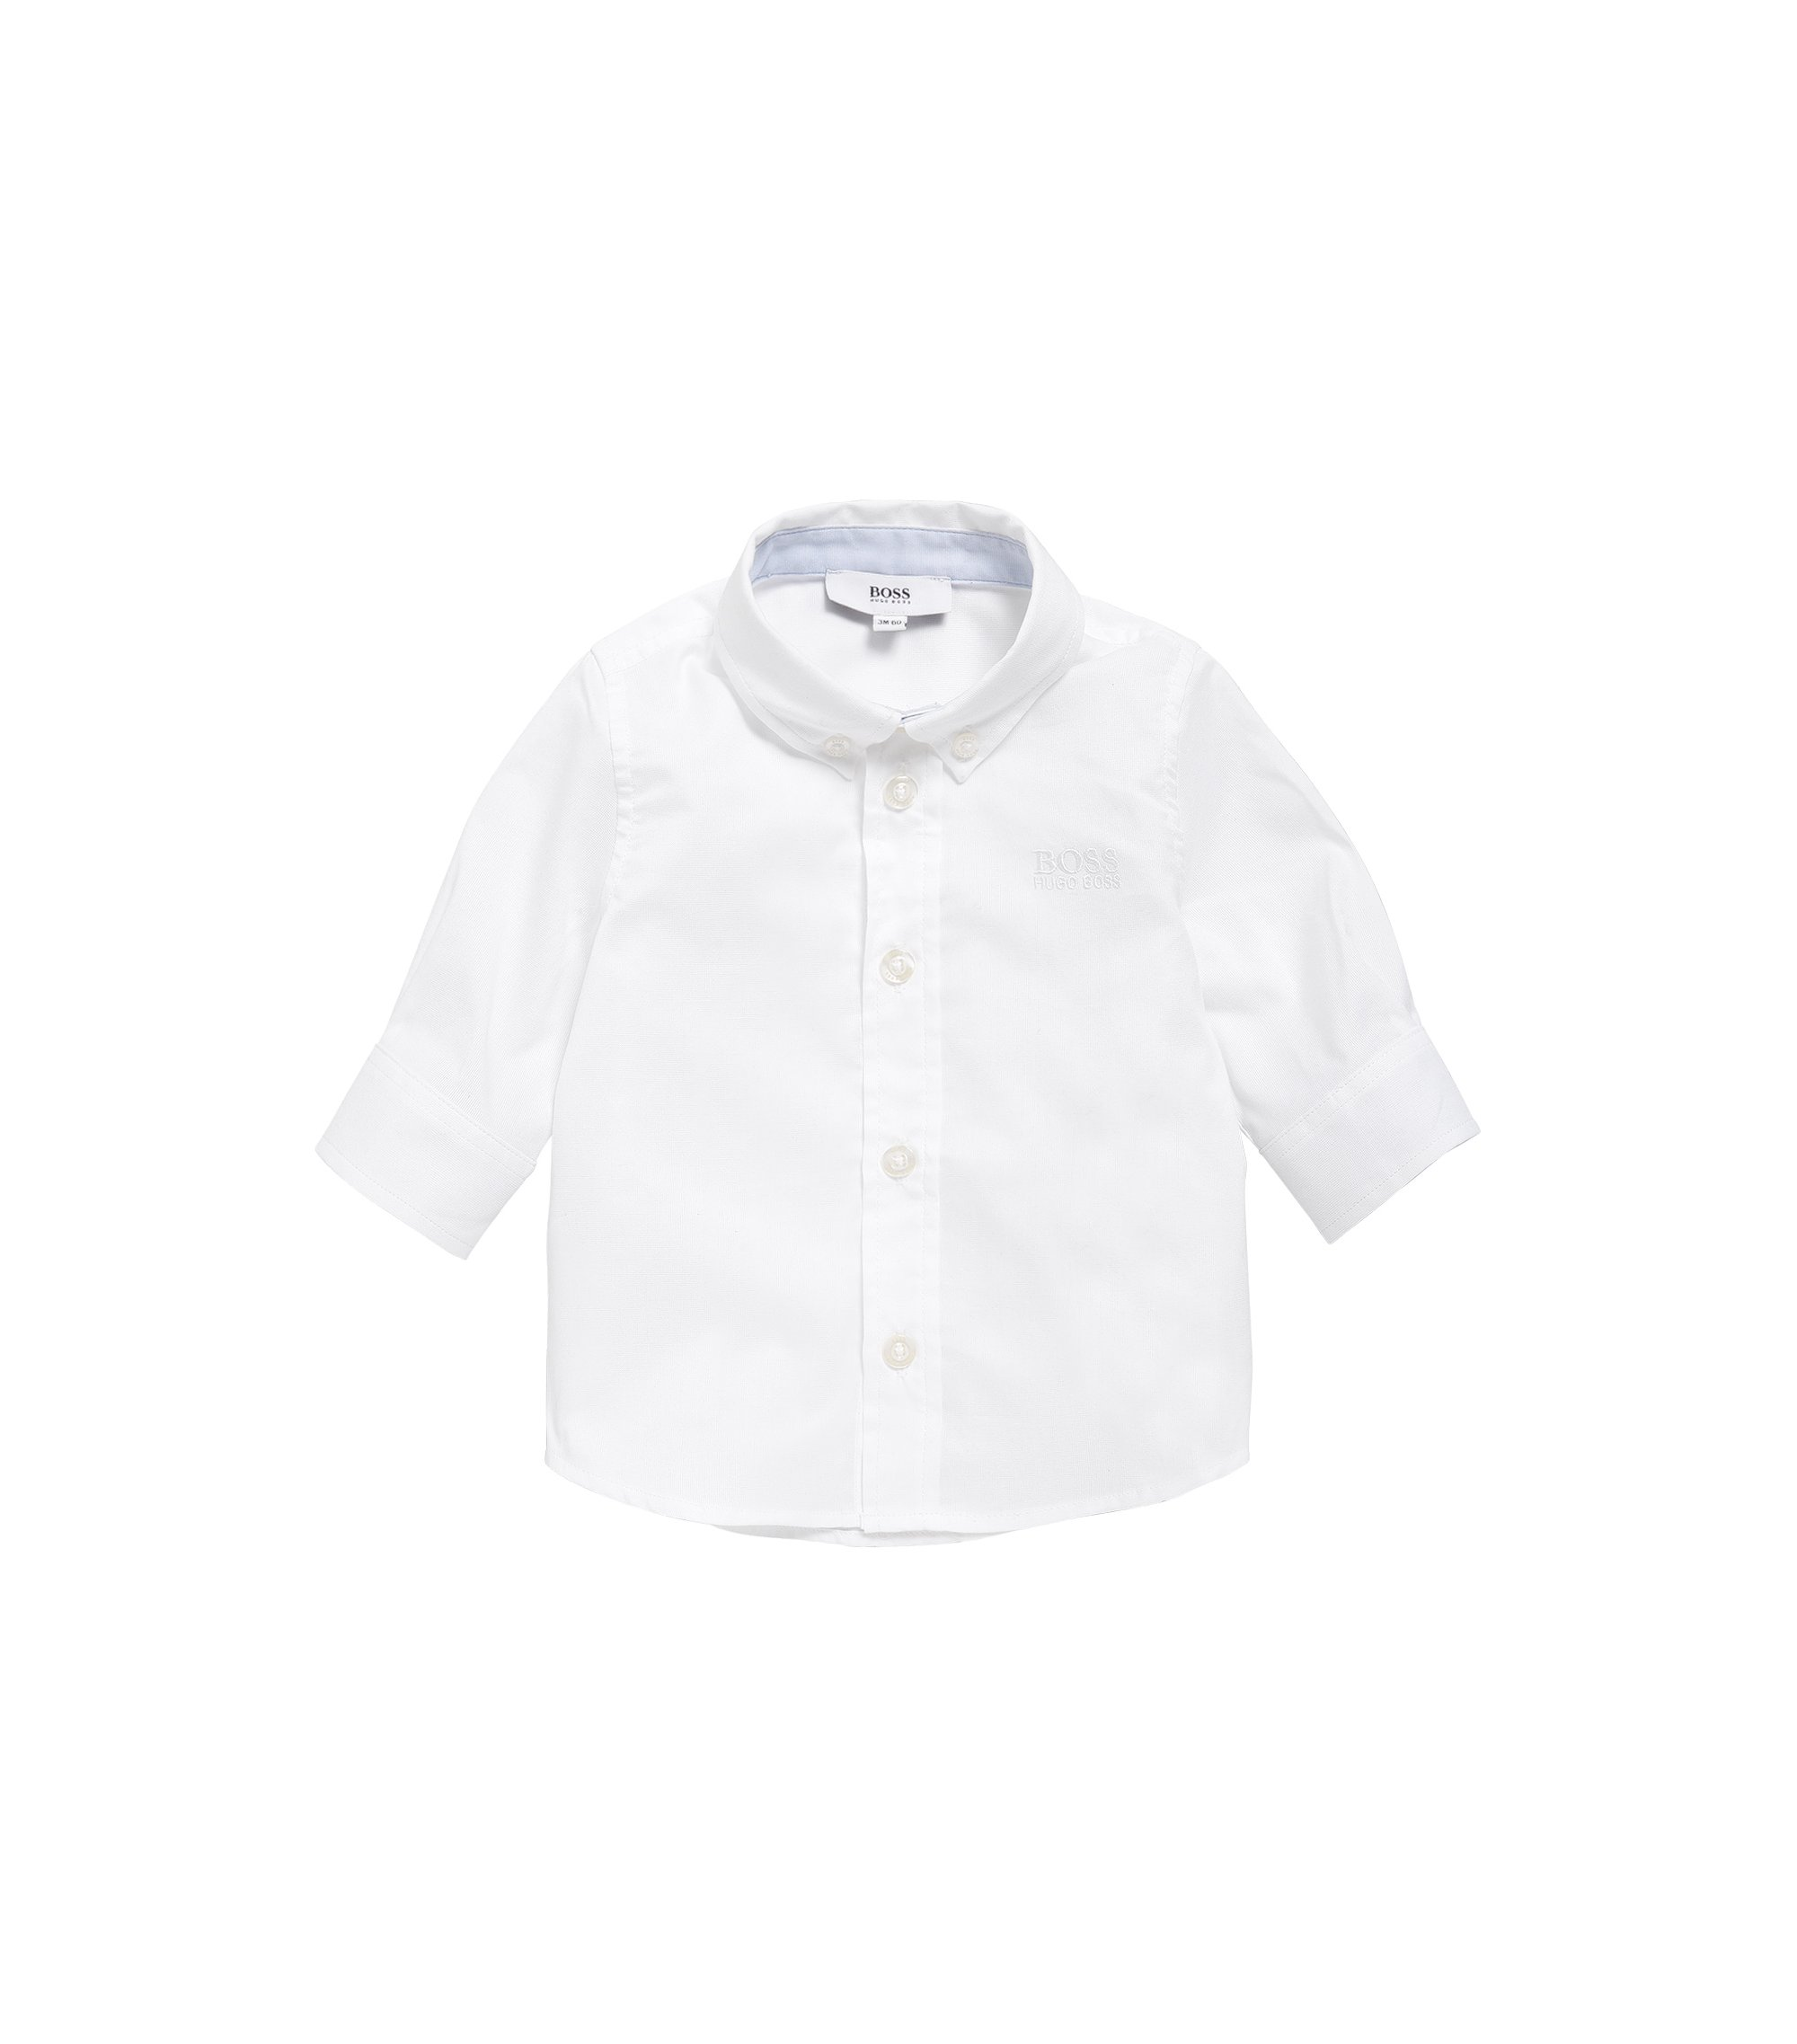 Kids' shirt in cotton with button-down collar: 'J05508', White